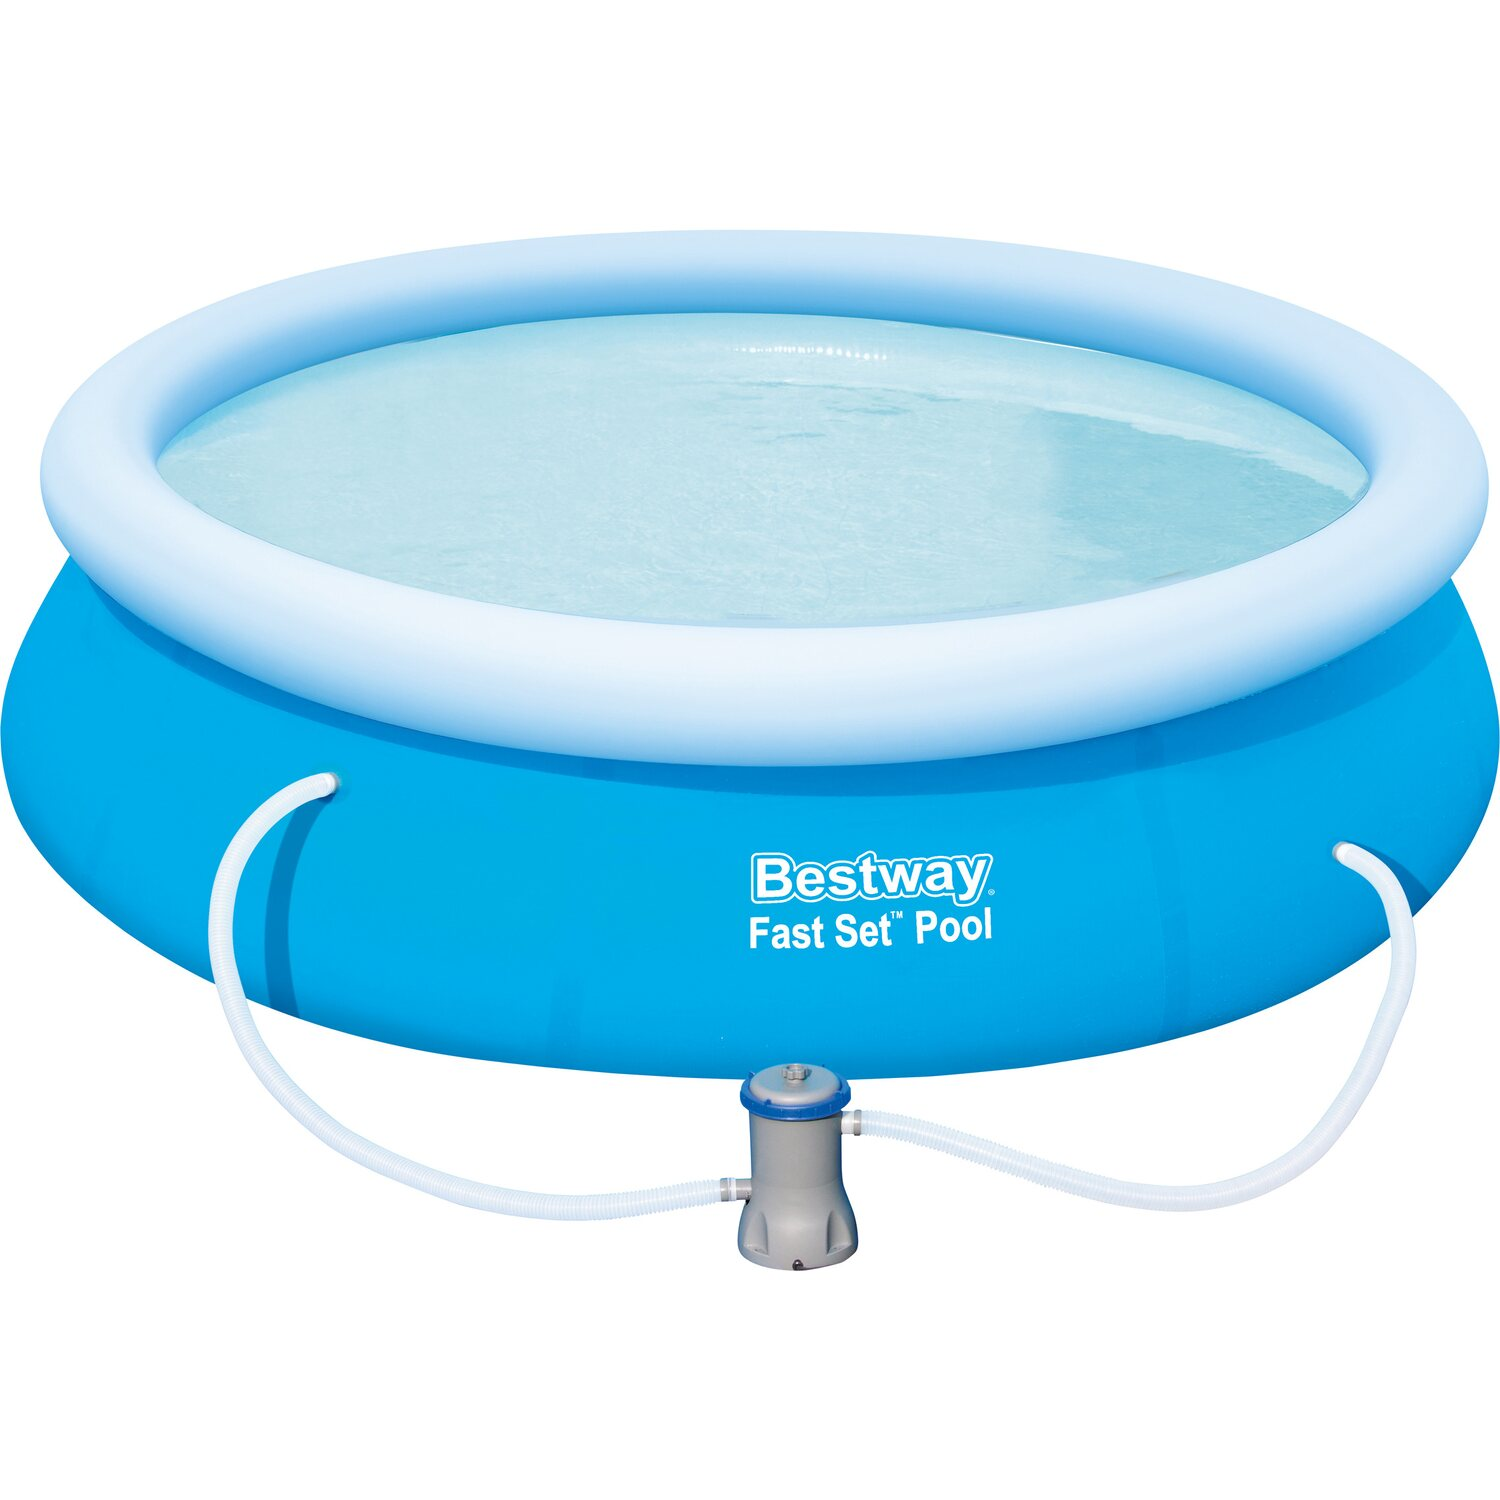 Bestway fast set pool baz nov sada 274 cm x 76 cm for Bestway pool bei obi